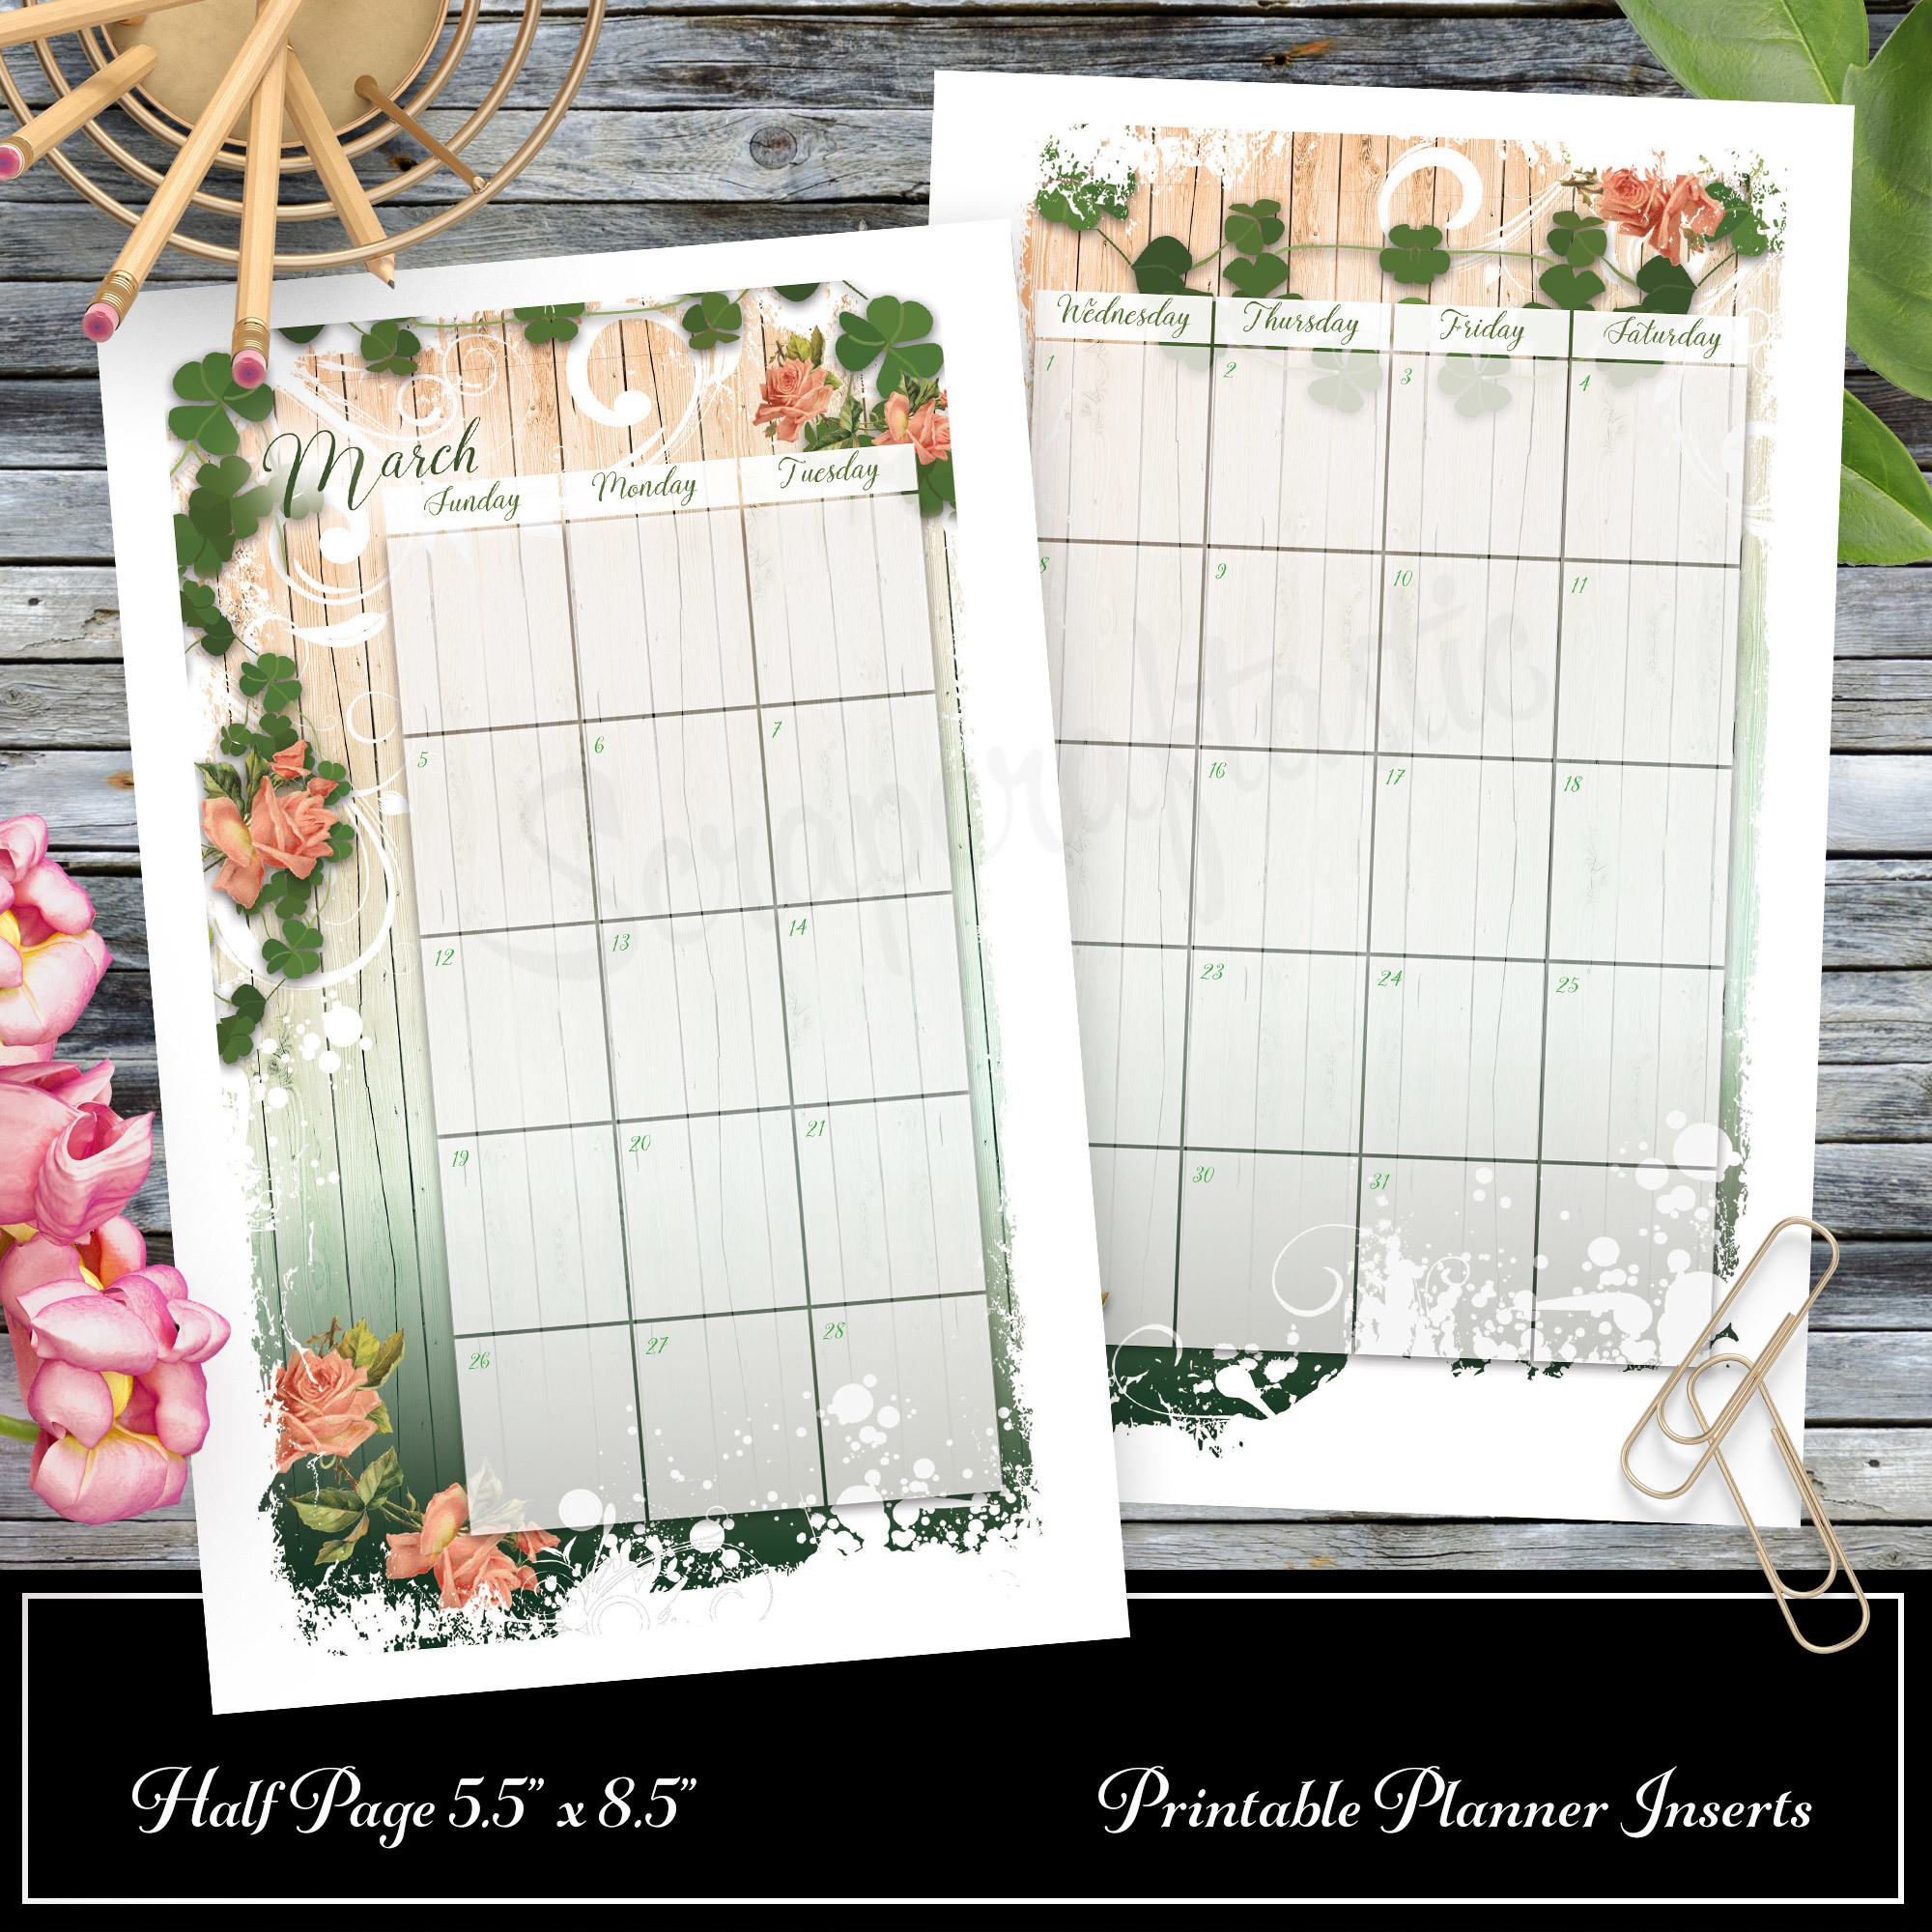 Lucky Wish for Half Page Size Printable Planner Insert 00311